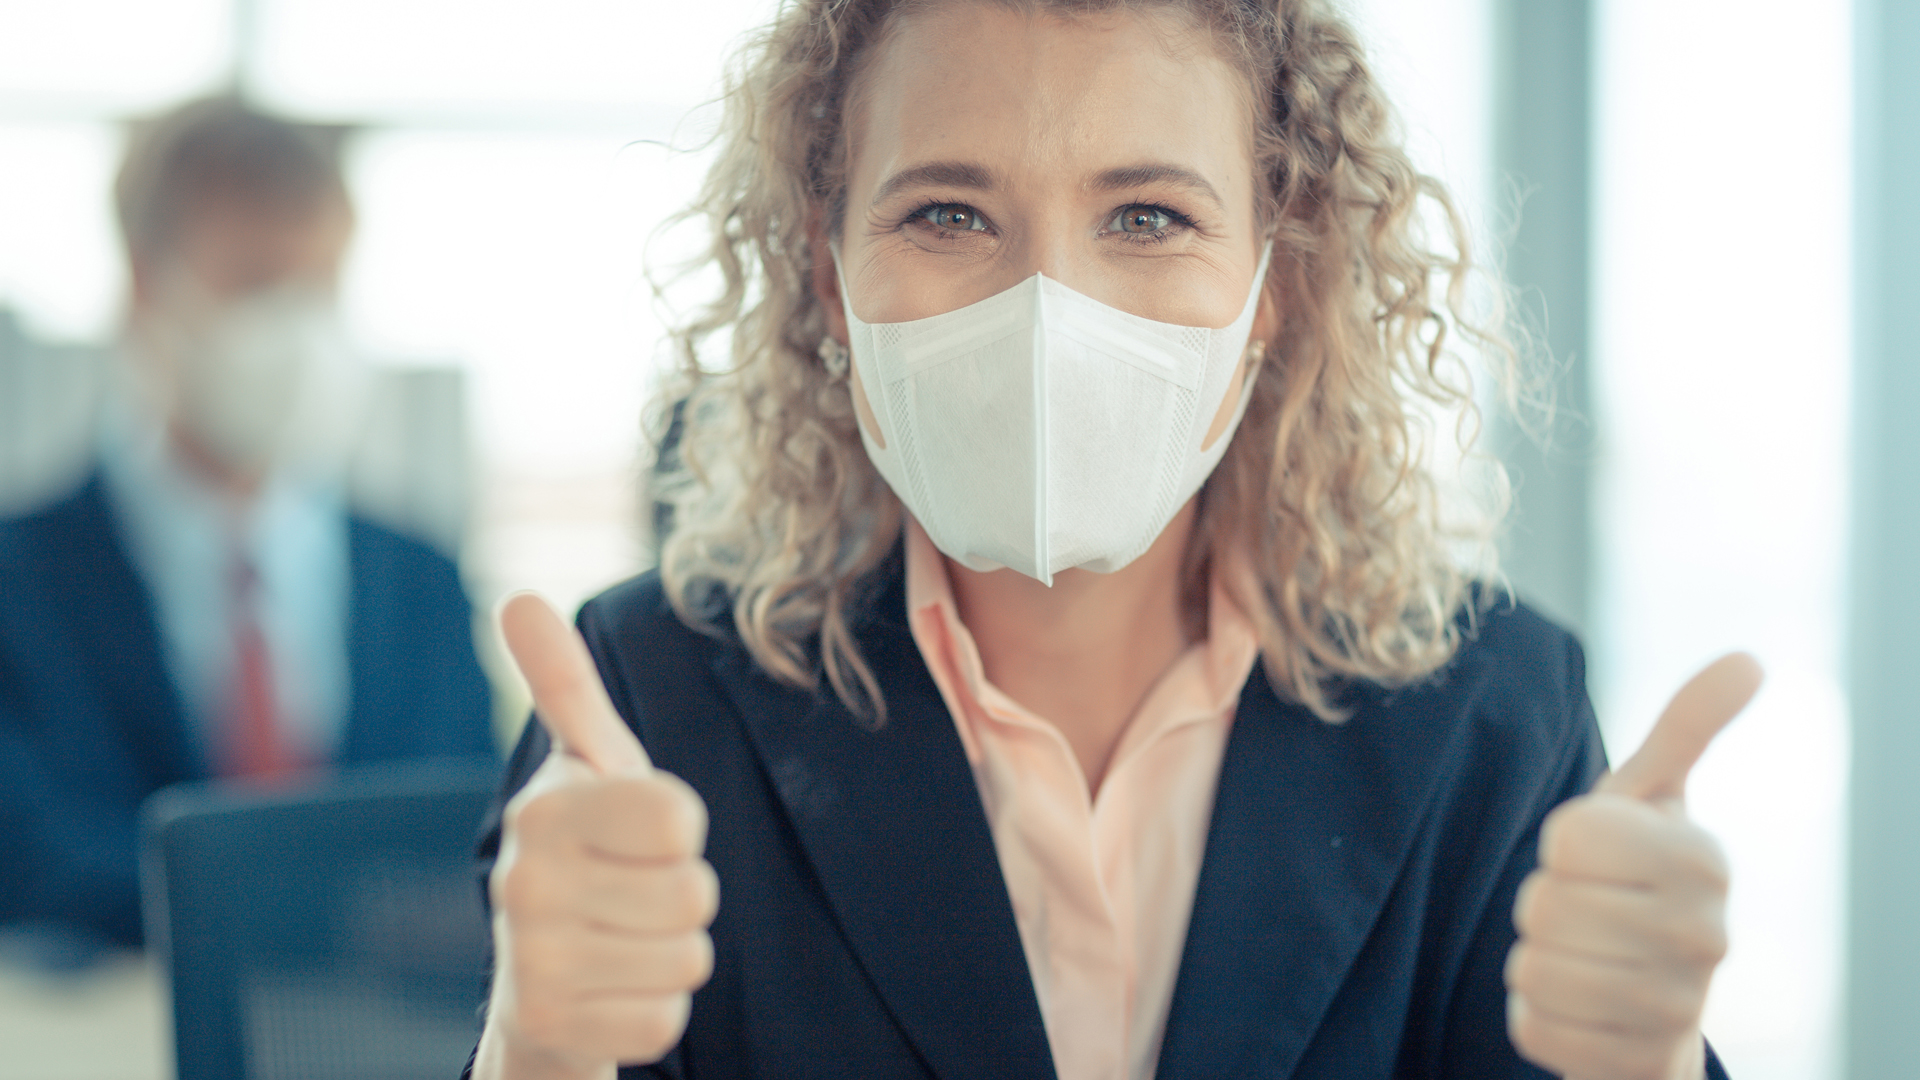 While there are still a number of unknowns surrounding coronavirus disease 2019 (COVID-19), it is well known that the use of masks has a profound effect on the spread of COVID-19.